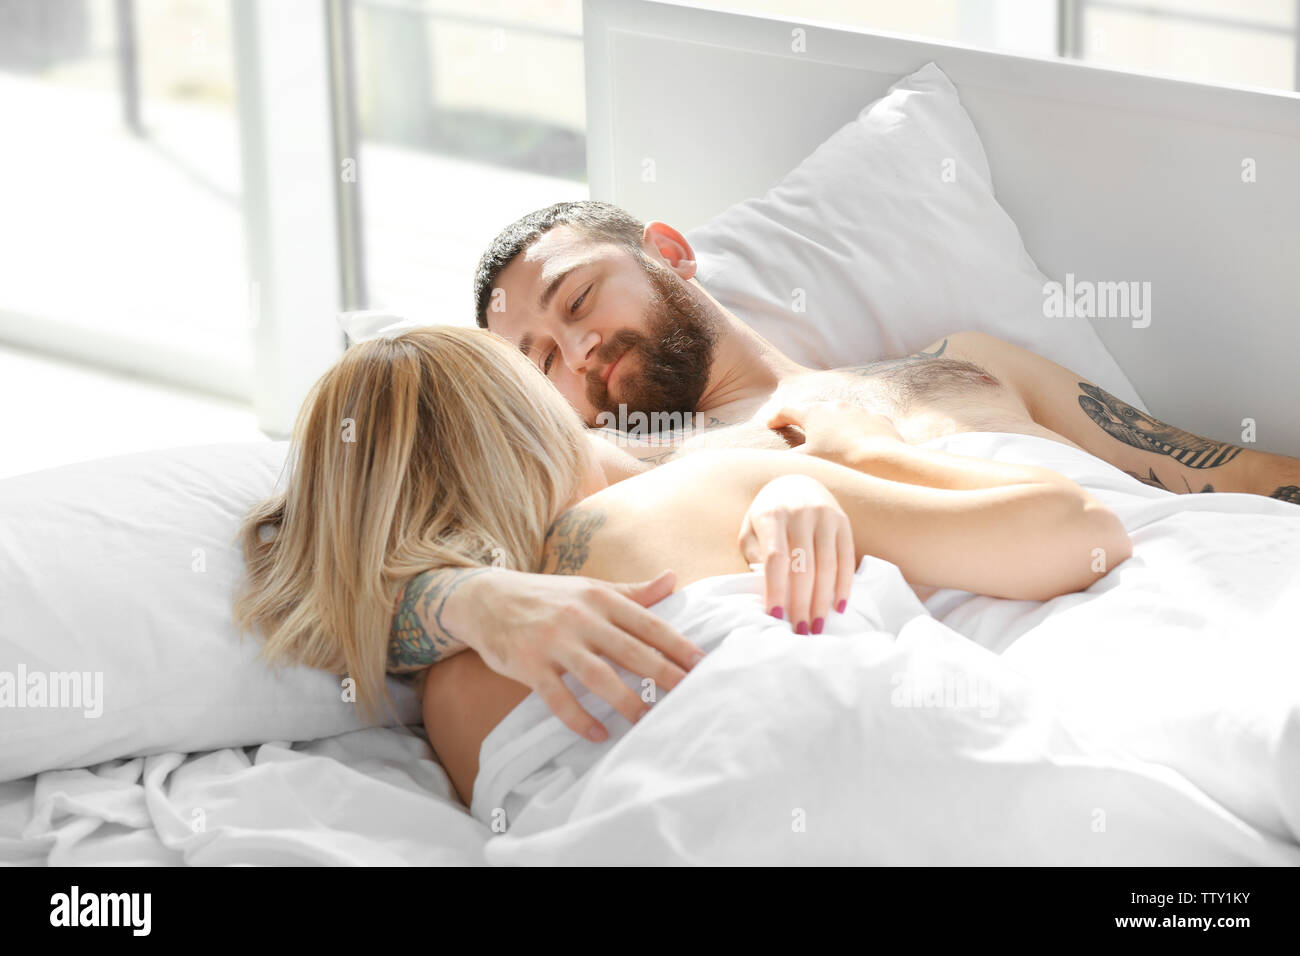 Tattooed couple sleeping in bed - Stock Image